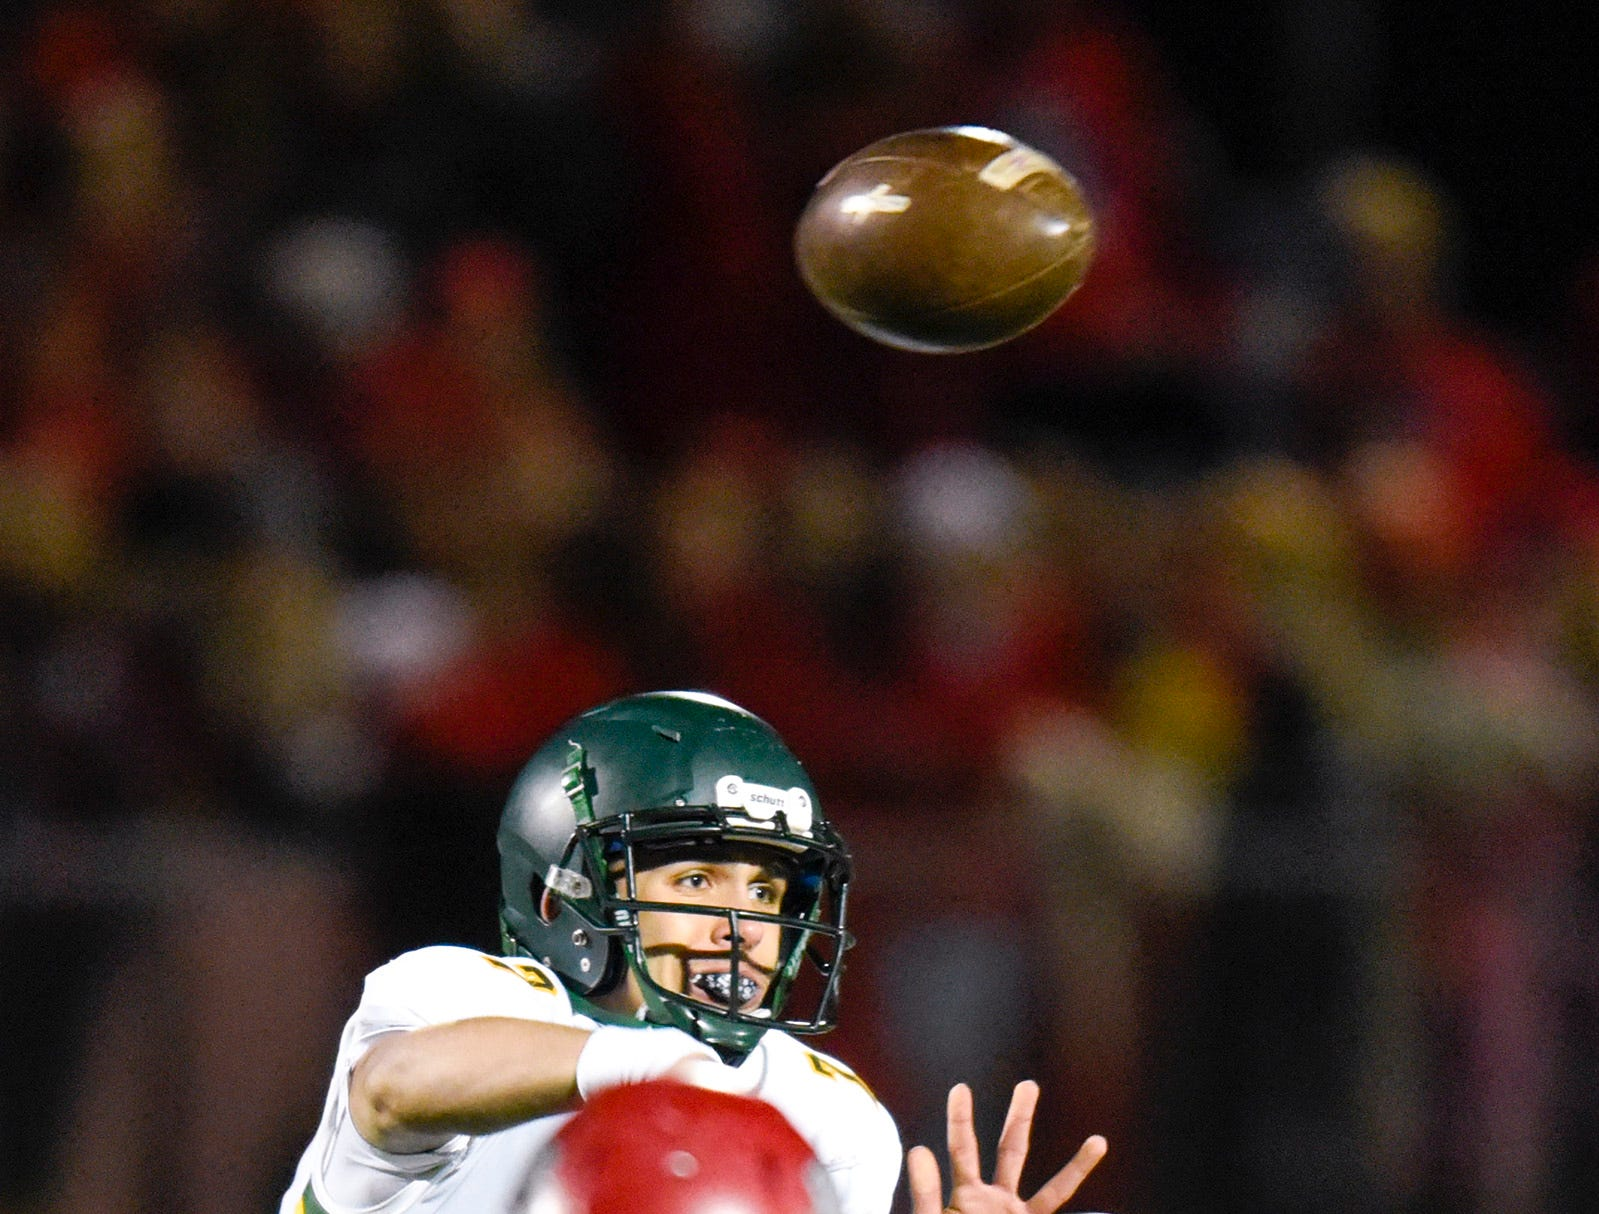 Sauk Rapids quarterback Cade Milton-Baumgardner throws against Elk River during the first half Friday, Nov. 2, in the Section 6-5A championship at Buffalo High School.